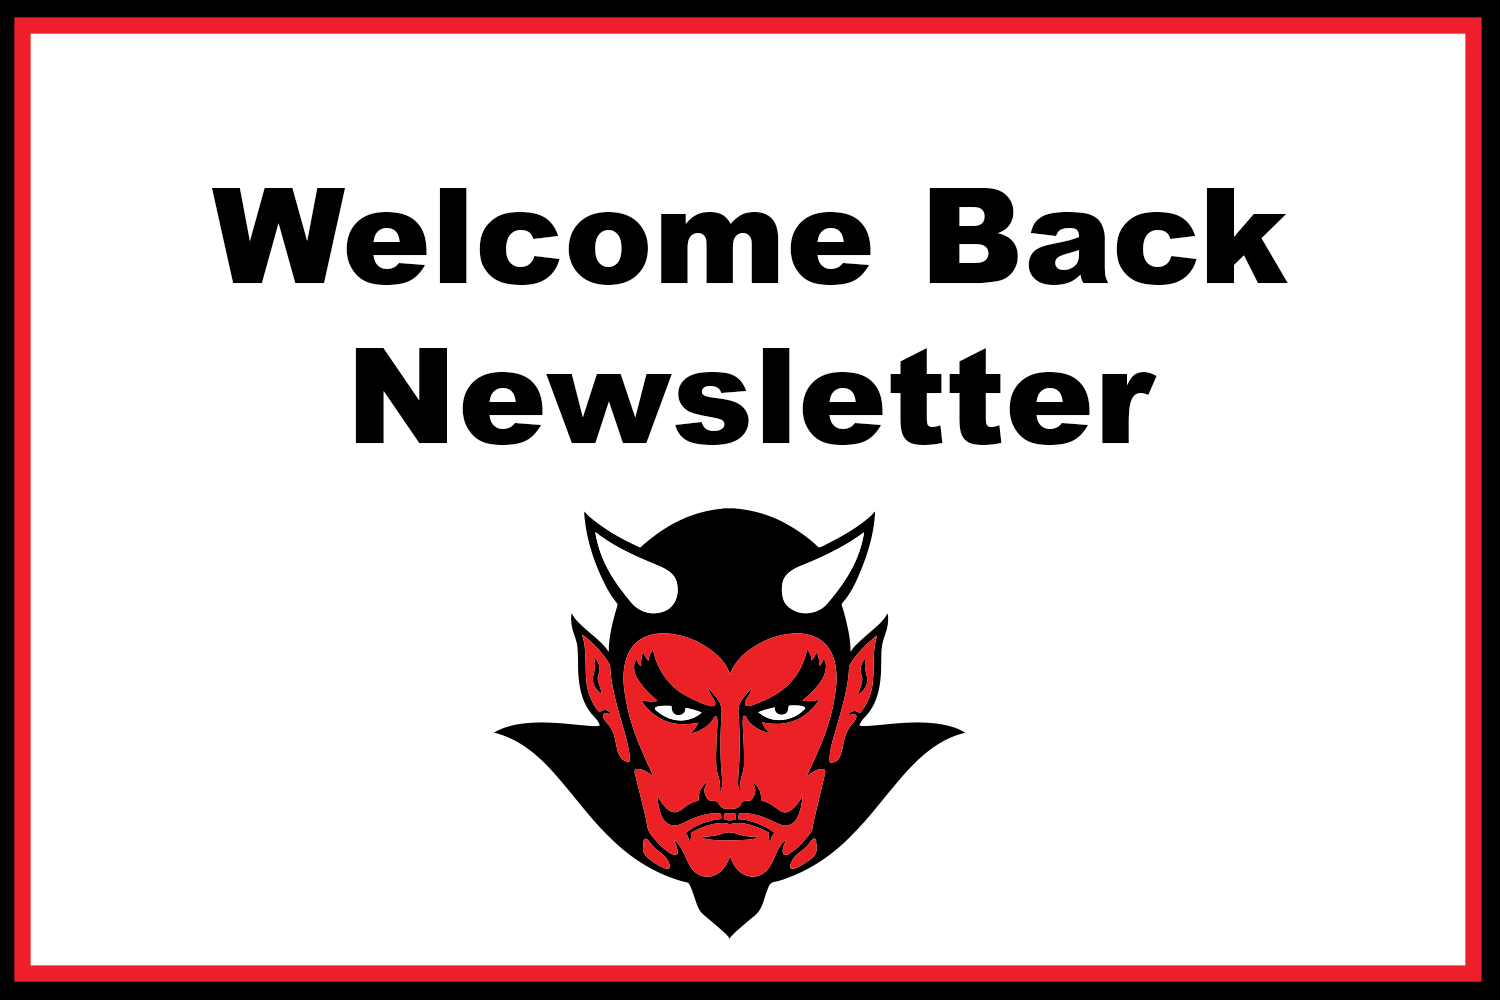 Welcome Back Newsletter